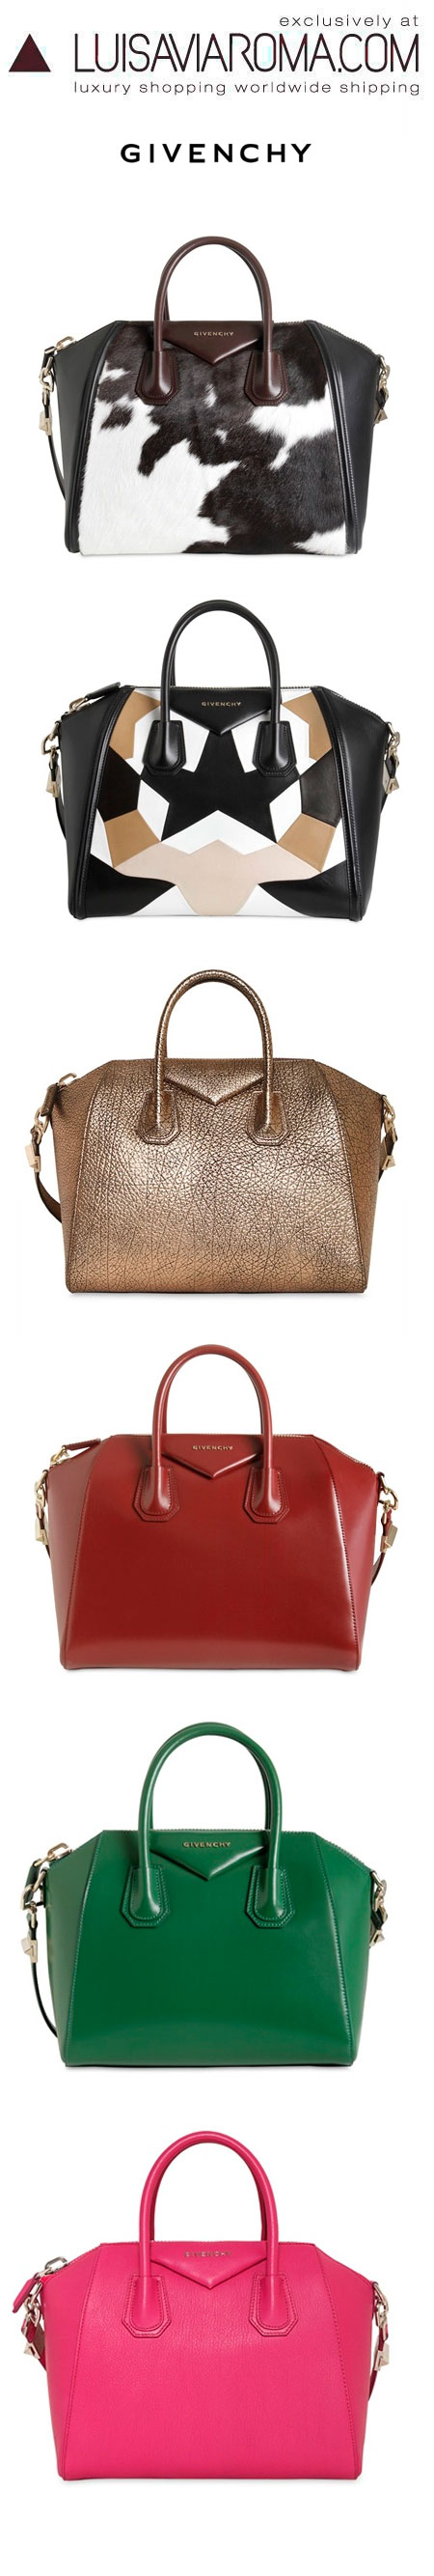 In <3 with #Givenchy...